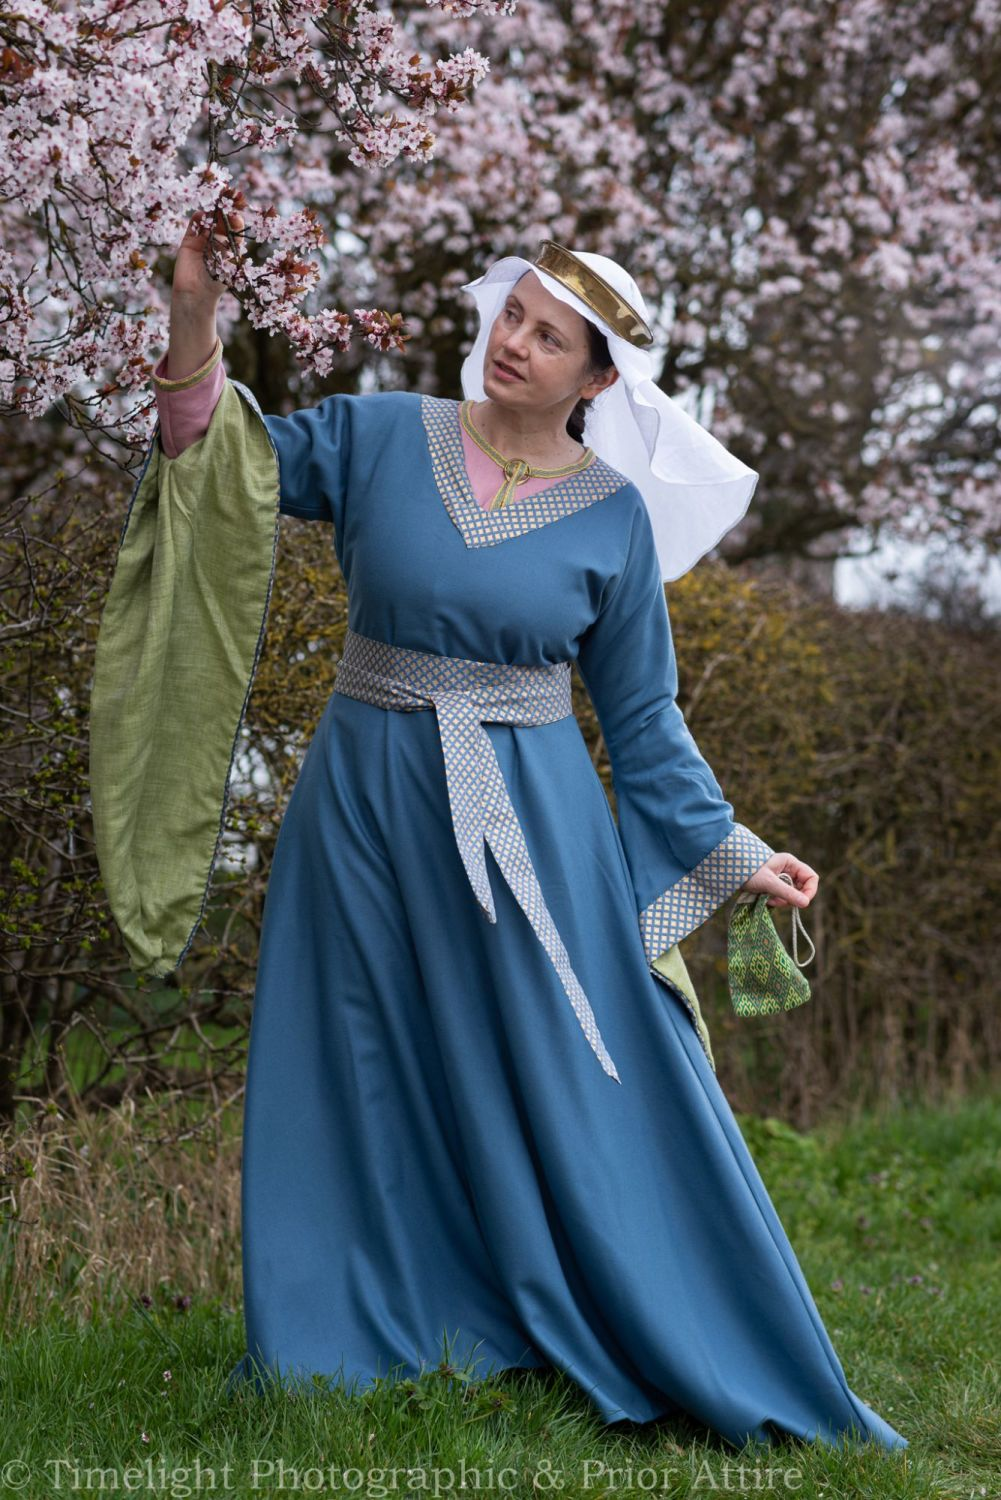 Medieval dress Bliaut 12-13th century, size S-M